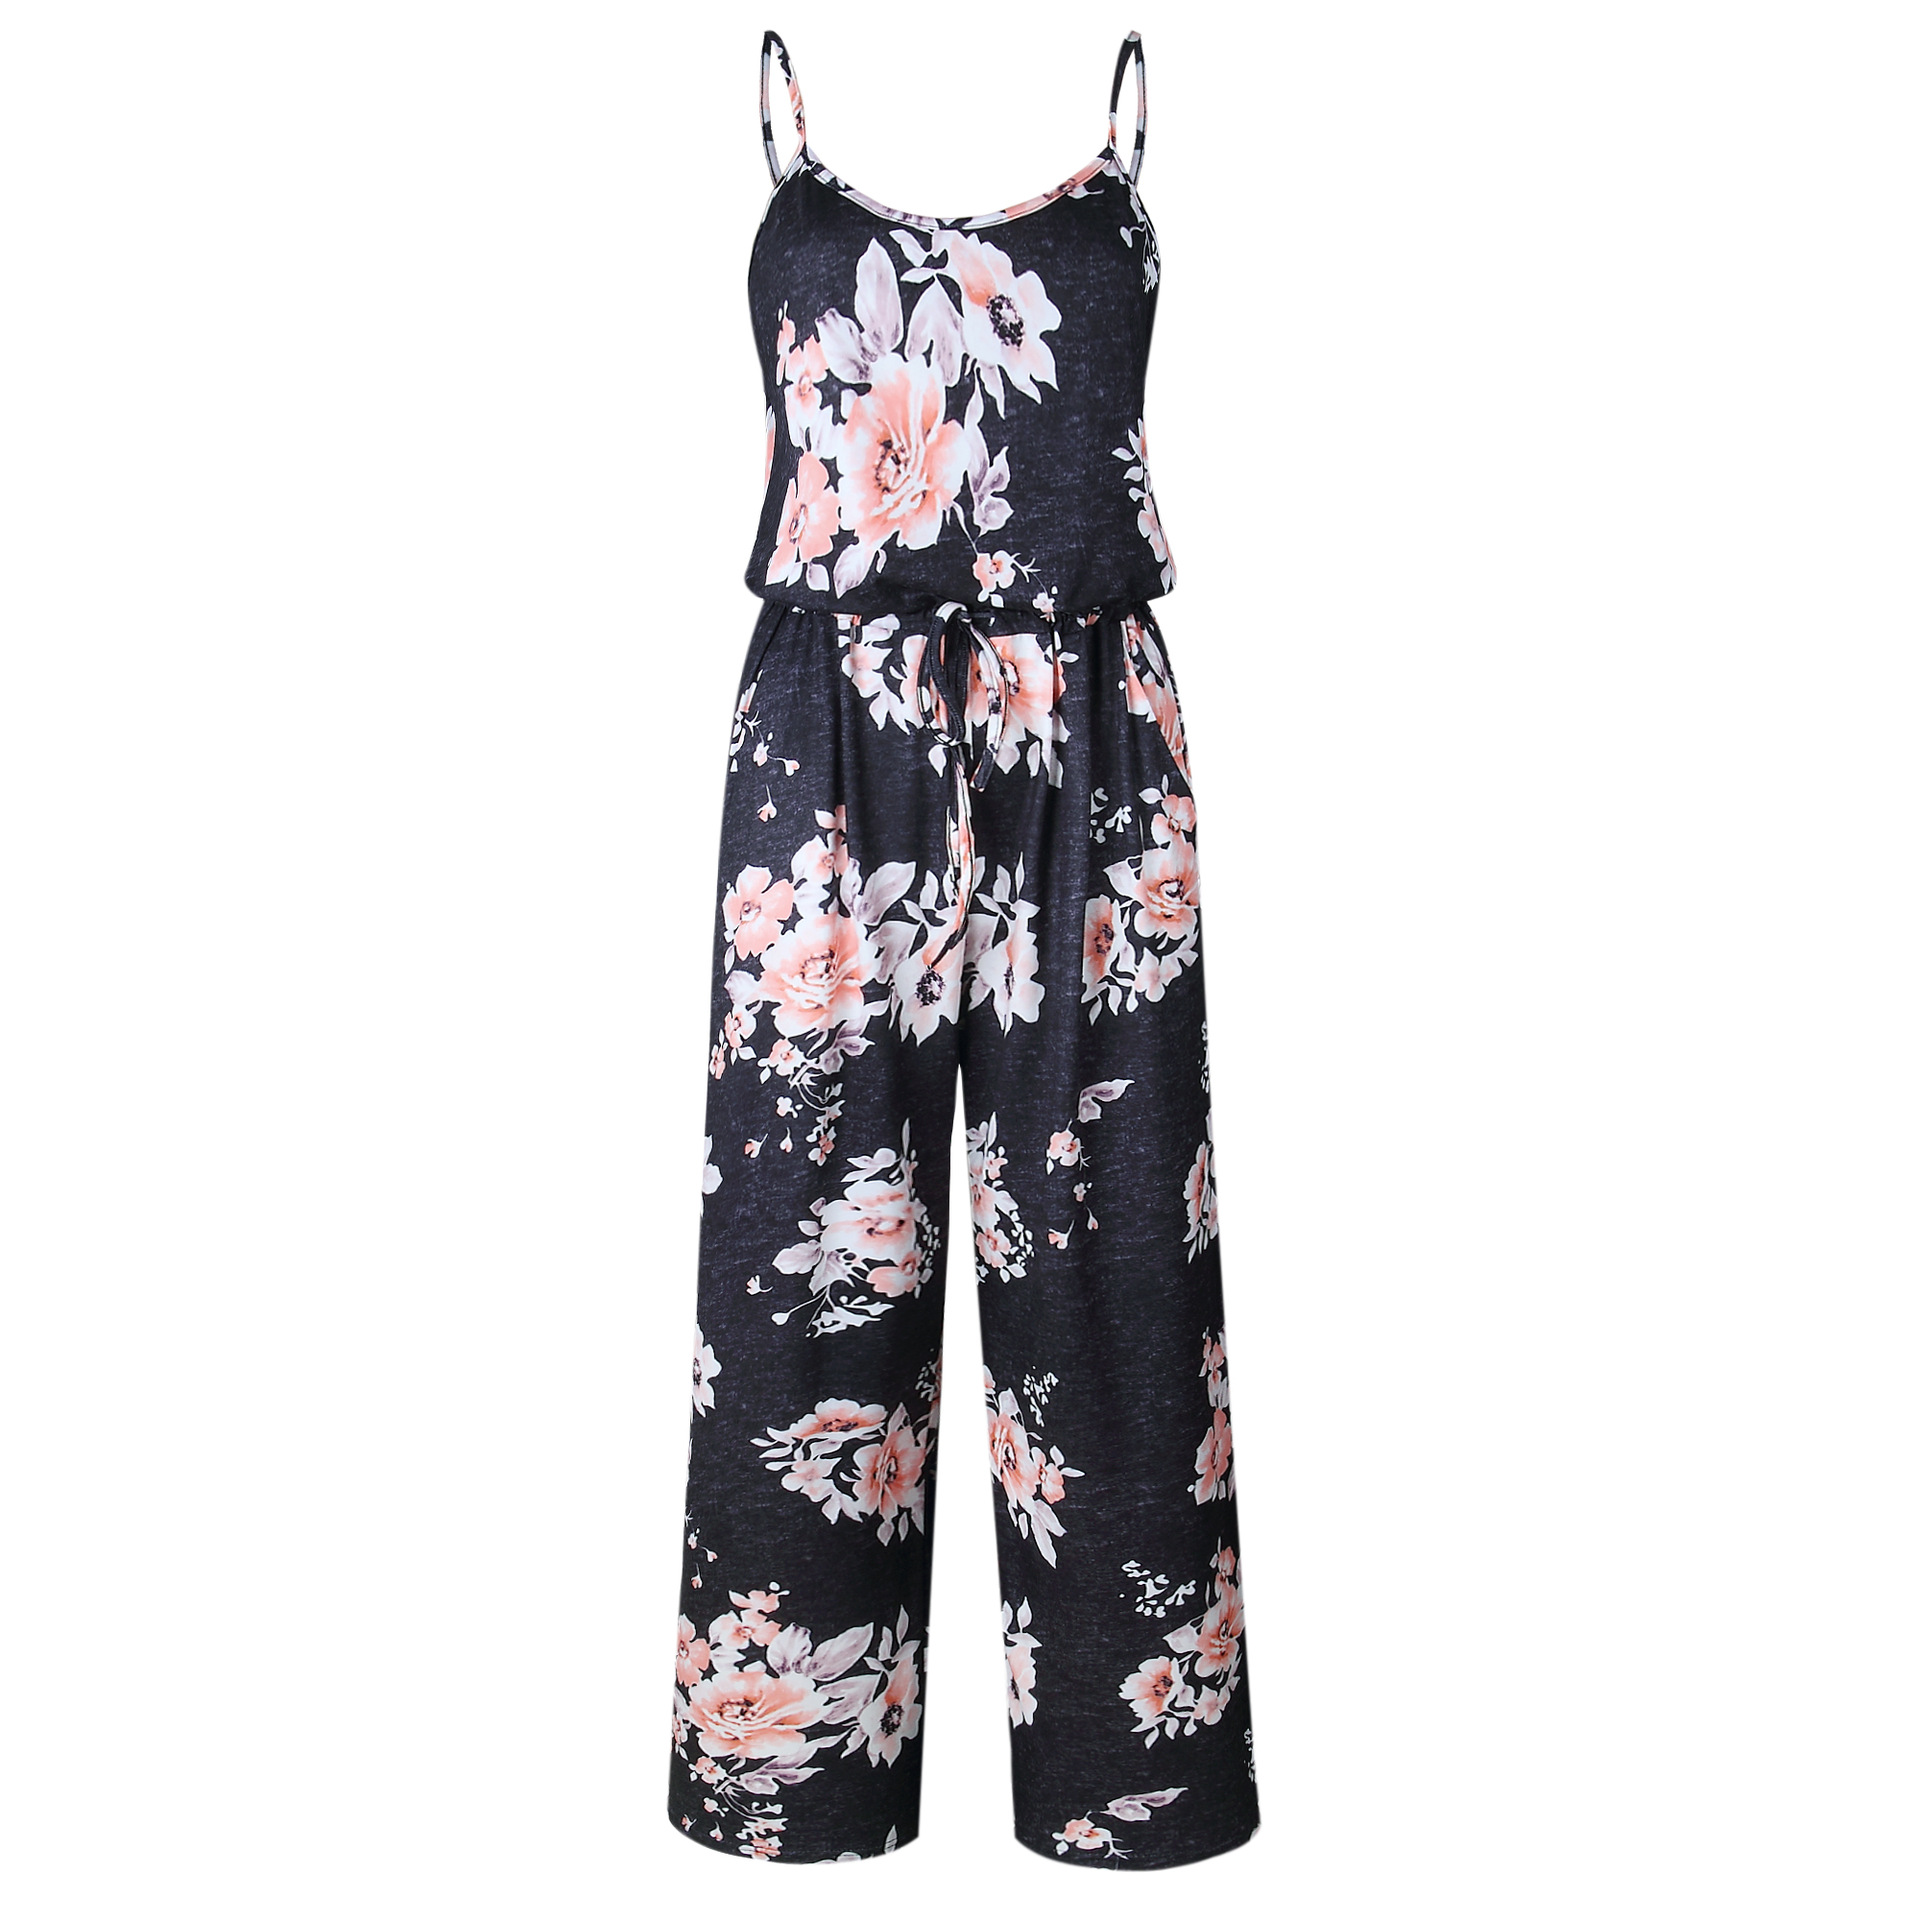 Spaghetti Strap Jumpsuit Women 2018 Summer Long Pants Floral Print Rompers Beach Casual Jumpsuits Sleeveless Sashes Playsuits 44